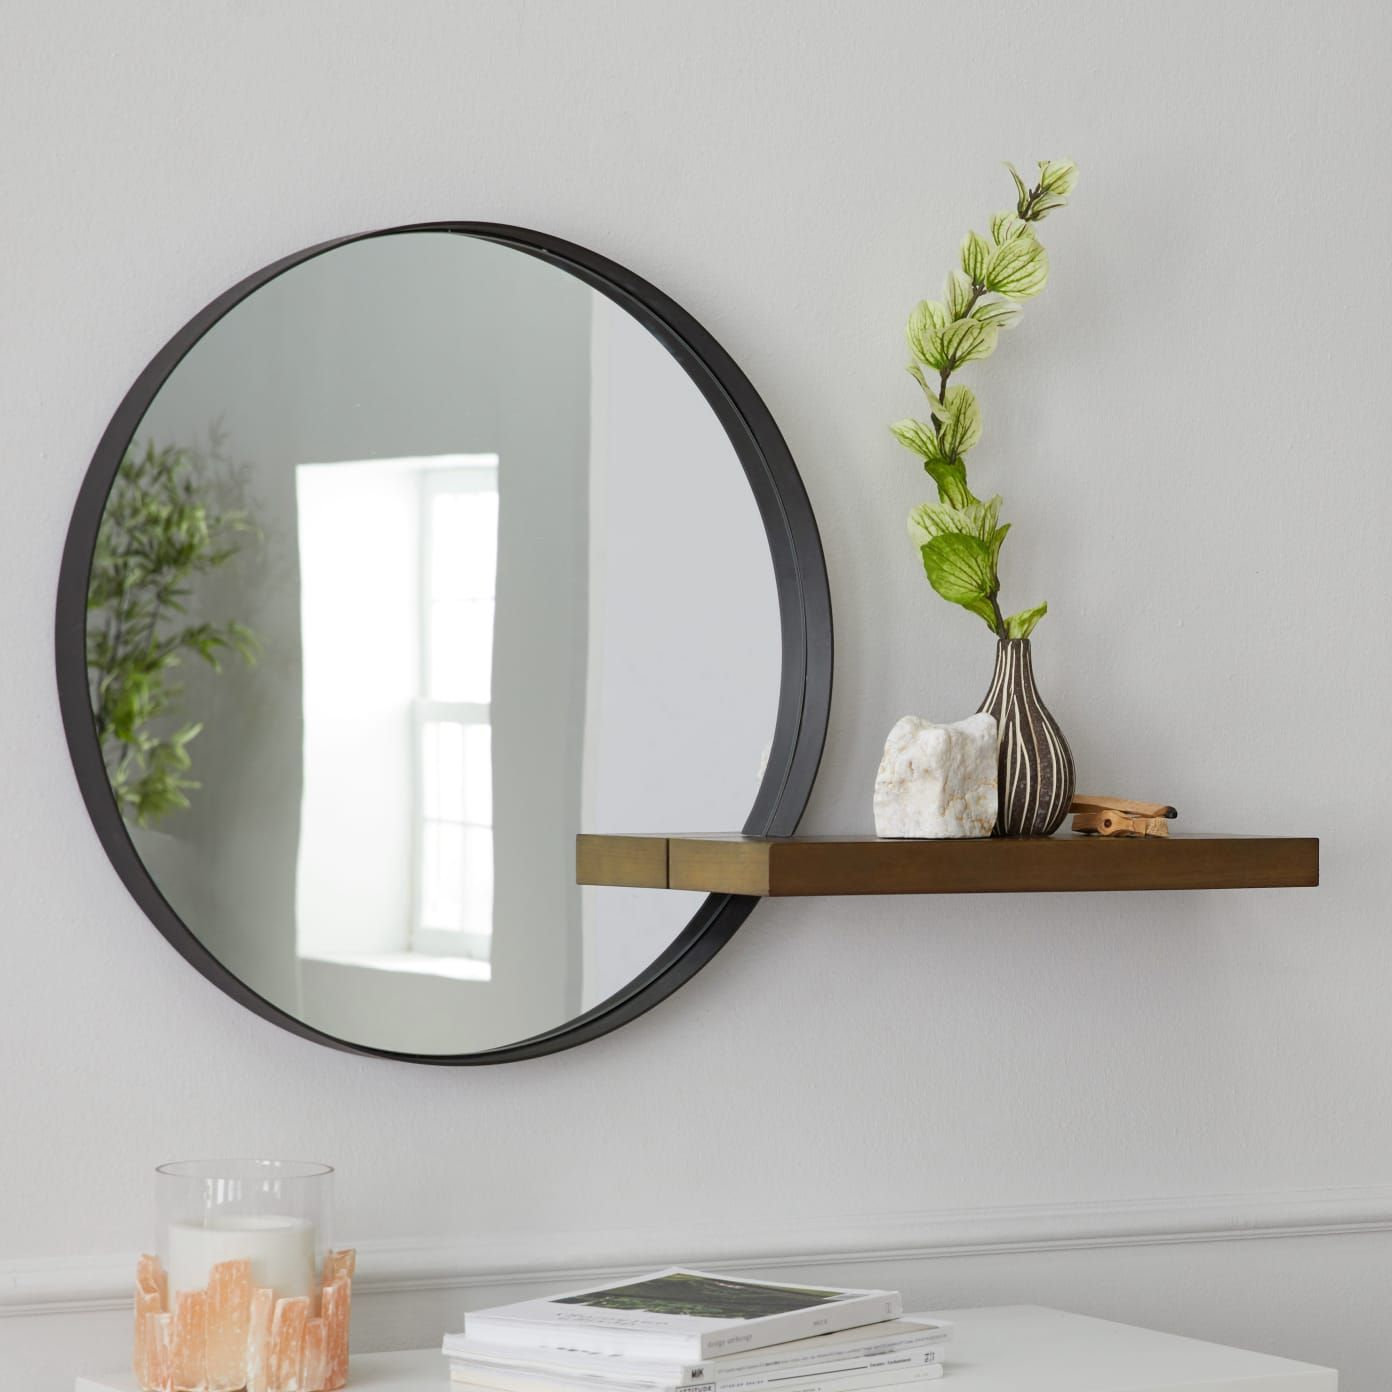 If You Want More Decor For Your Money Don T Buy A Mirror Without A Shelf Mirror Wall Decor Mirror Wall Wood Shelves